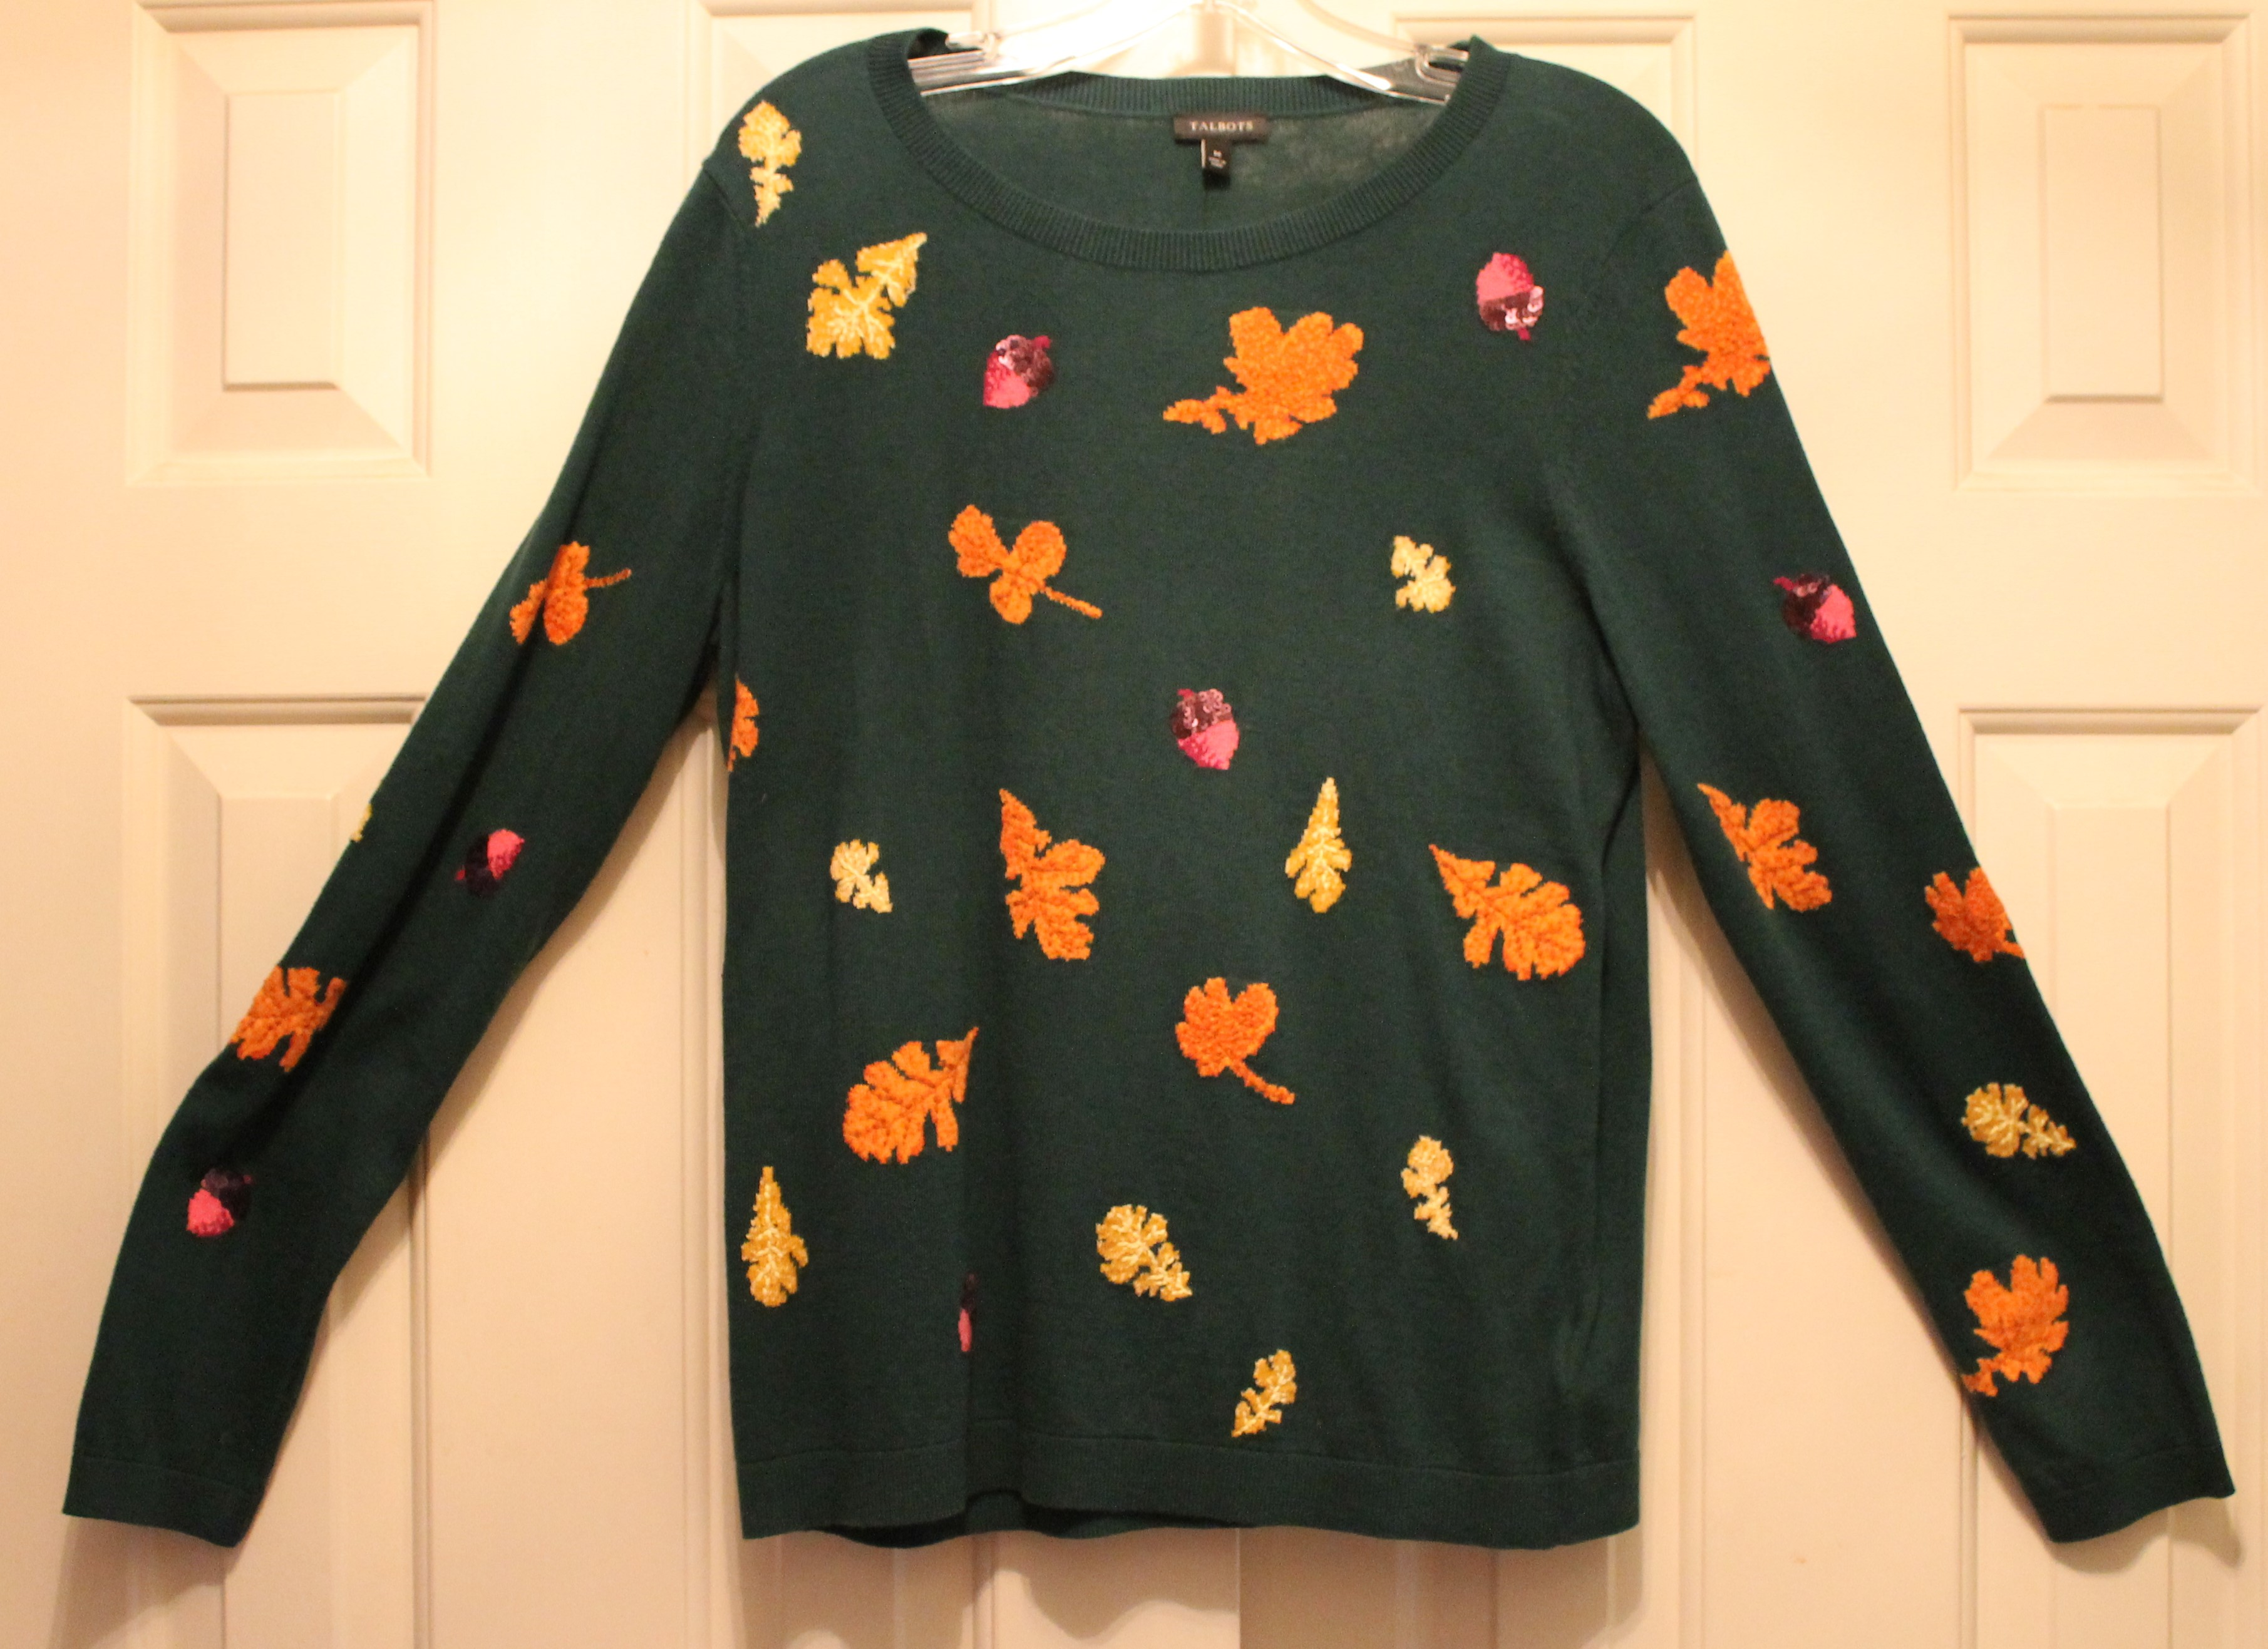 Talbots-Size-M-Green-Cotton-Blend-AUTUMN-Long-Sleeve-Top_64049A.jpg